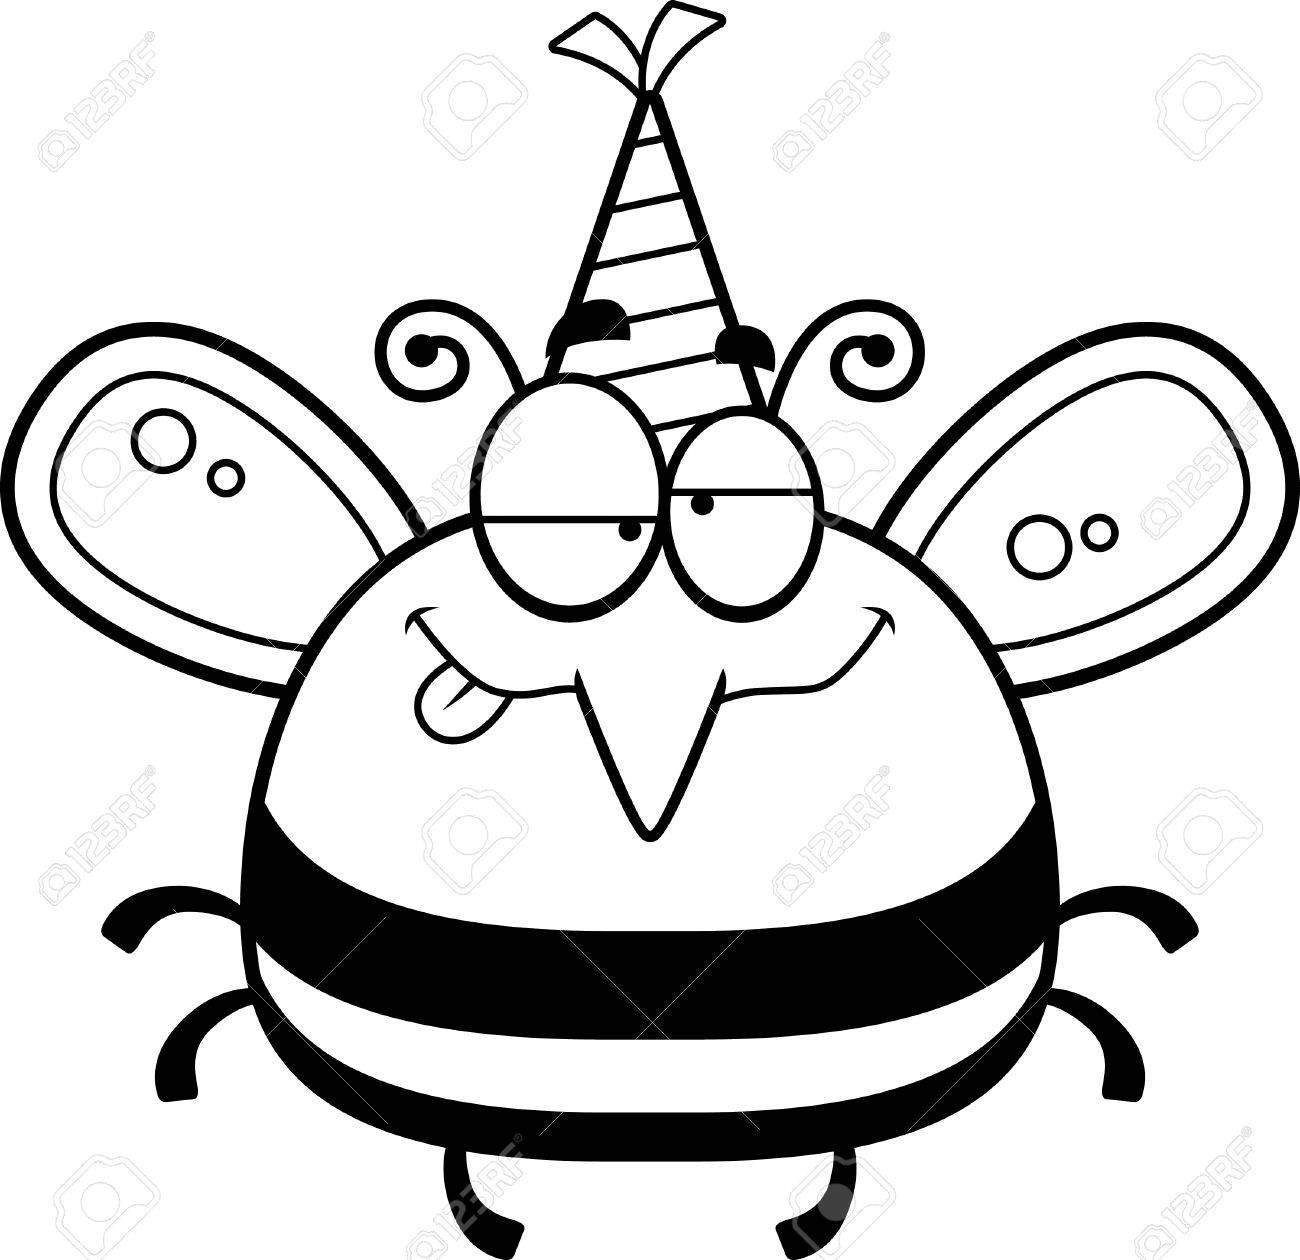 1300x1260 A Cartoon Illustration Of A Bee With A Party Hat Looking Drunk